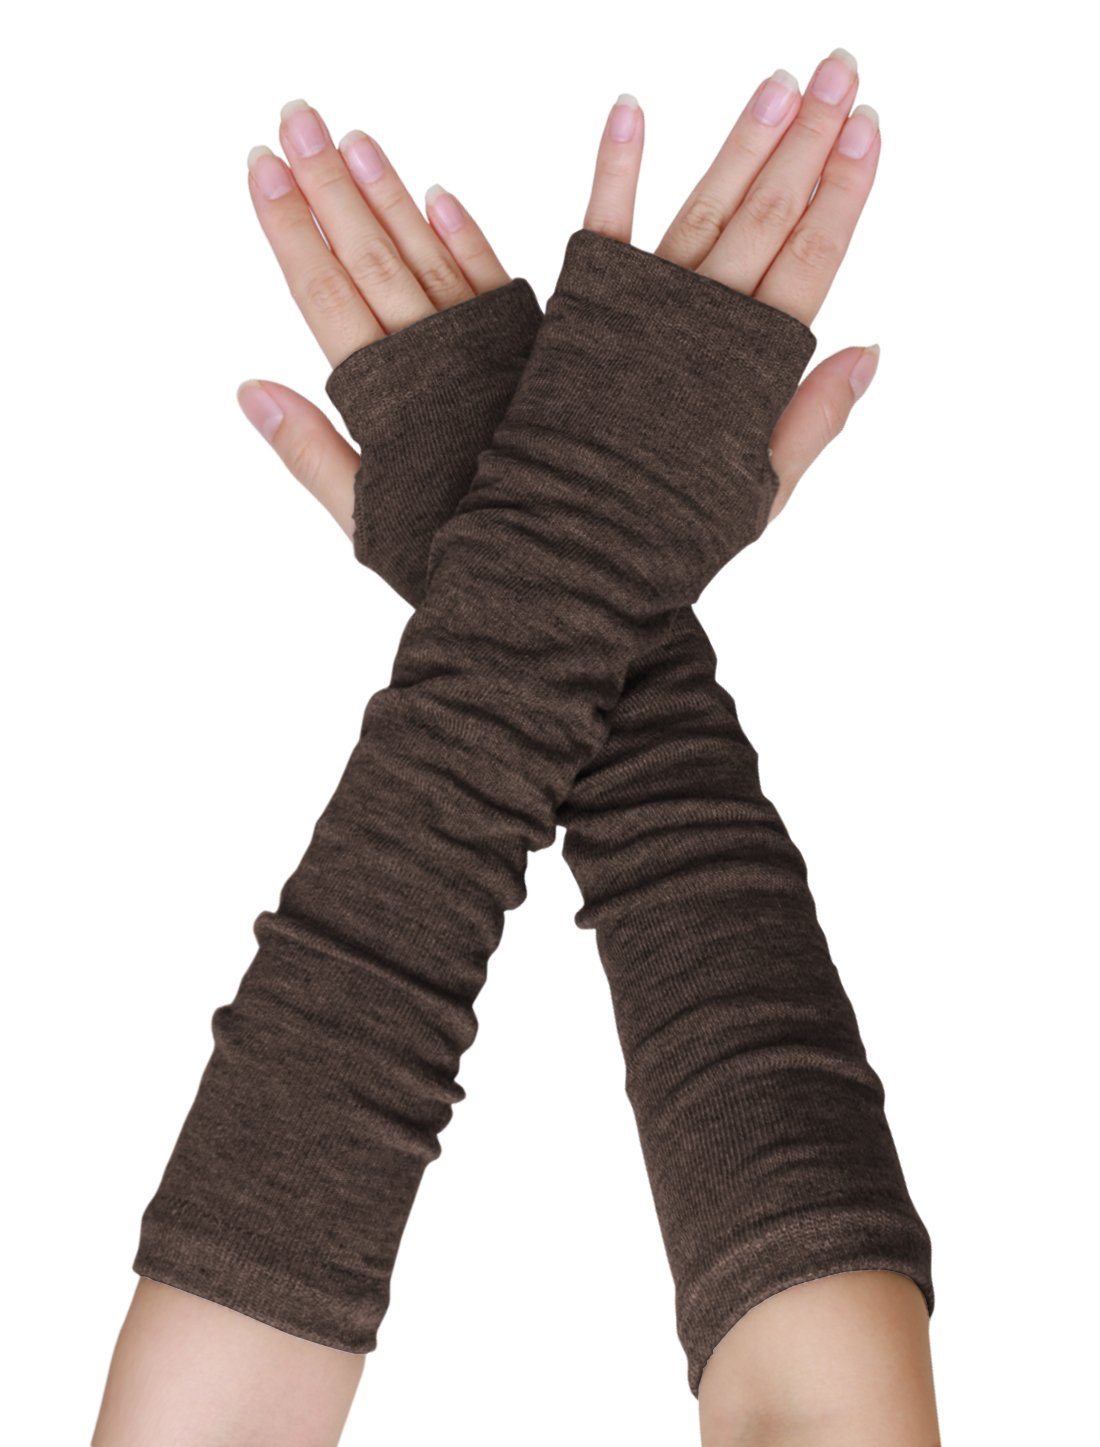 SourcingMap Women Elbow Length Arm Warmer Gloves Thumbhole Fingerless 1 Pairs Brown a15110400ux0408